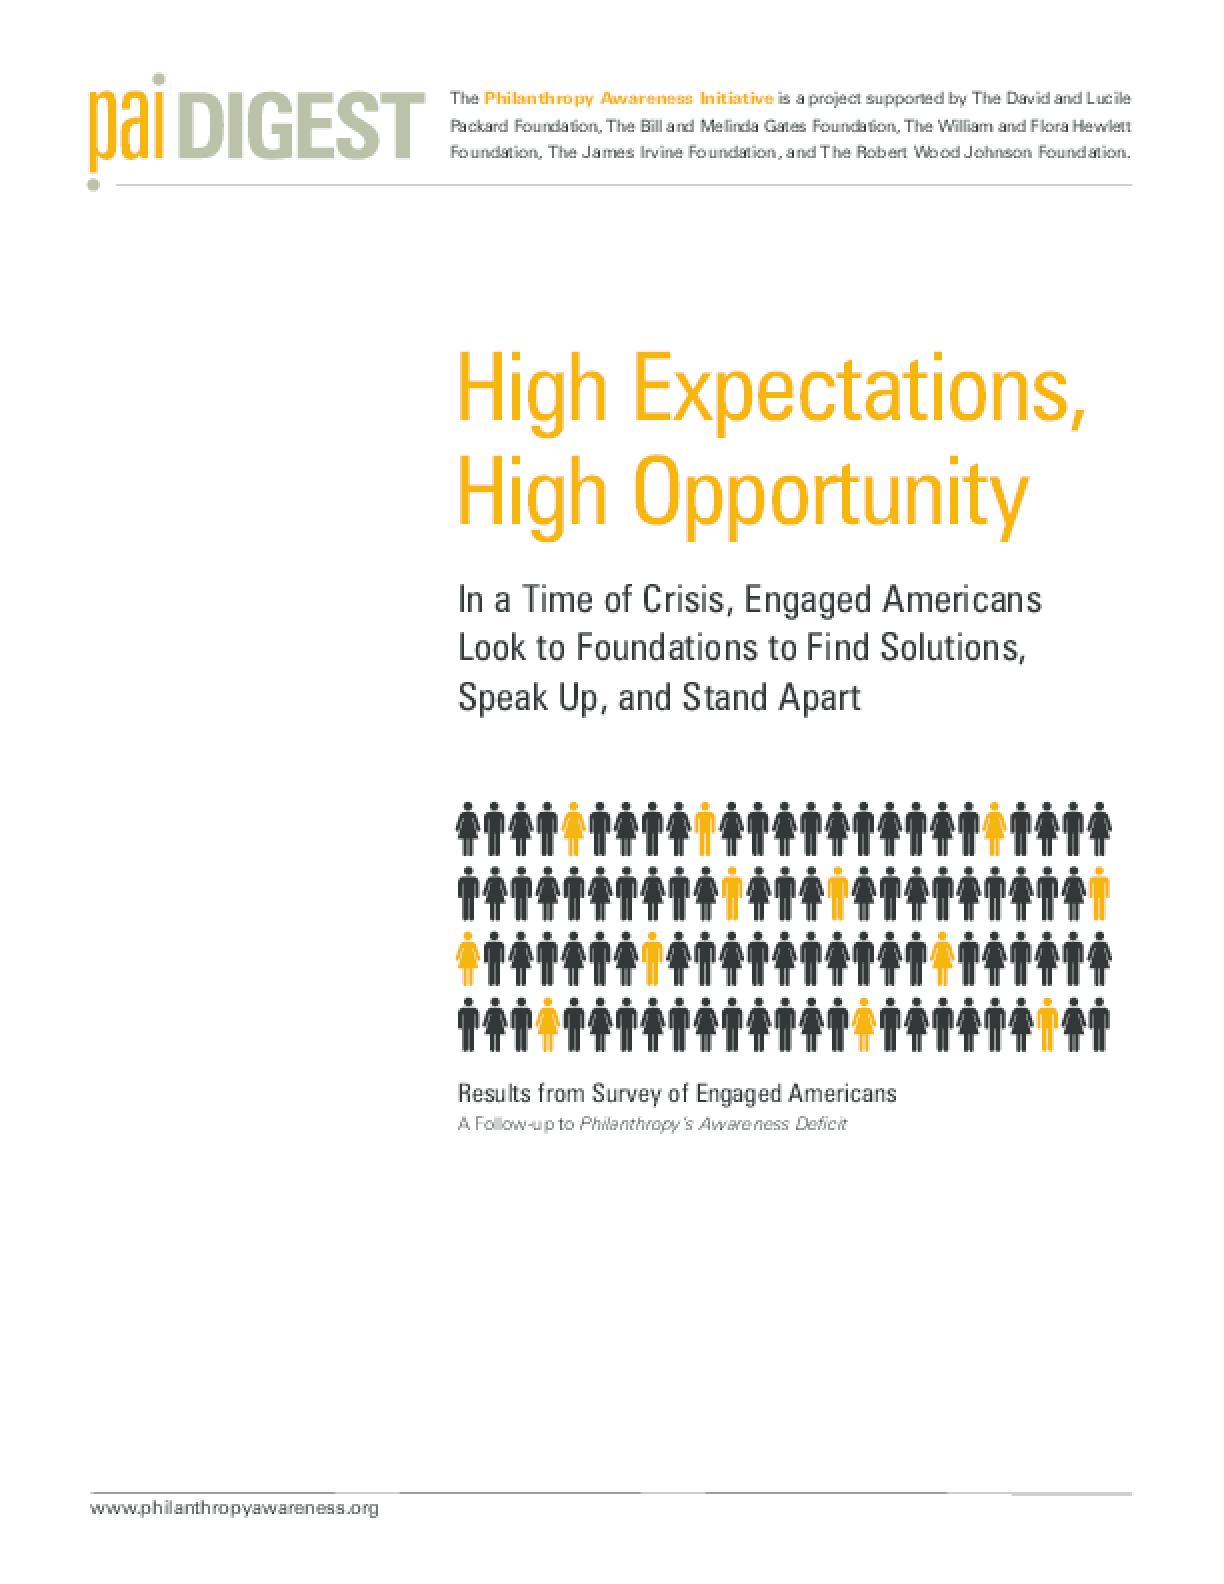 High Expectations, High Opportunity: In a Time of Crisis, Engaged Americans Look to Foundations to Find Solutions, Speak Up, and Stand Apart